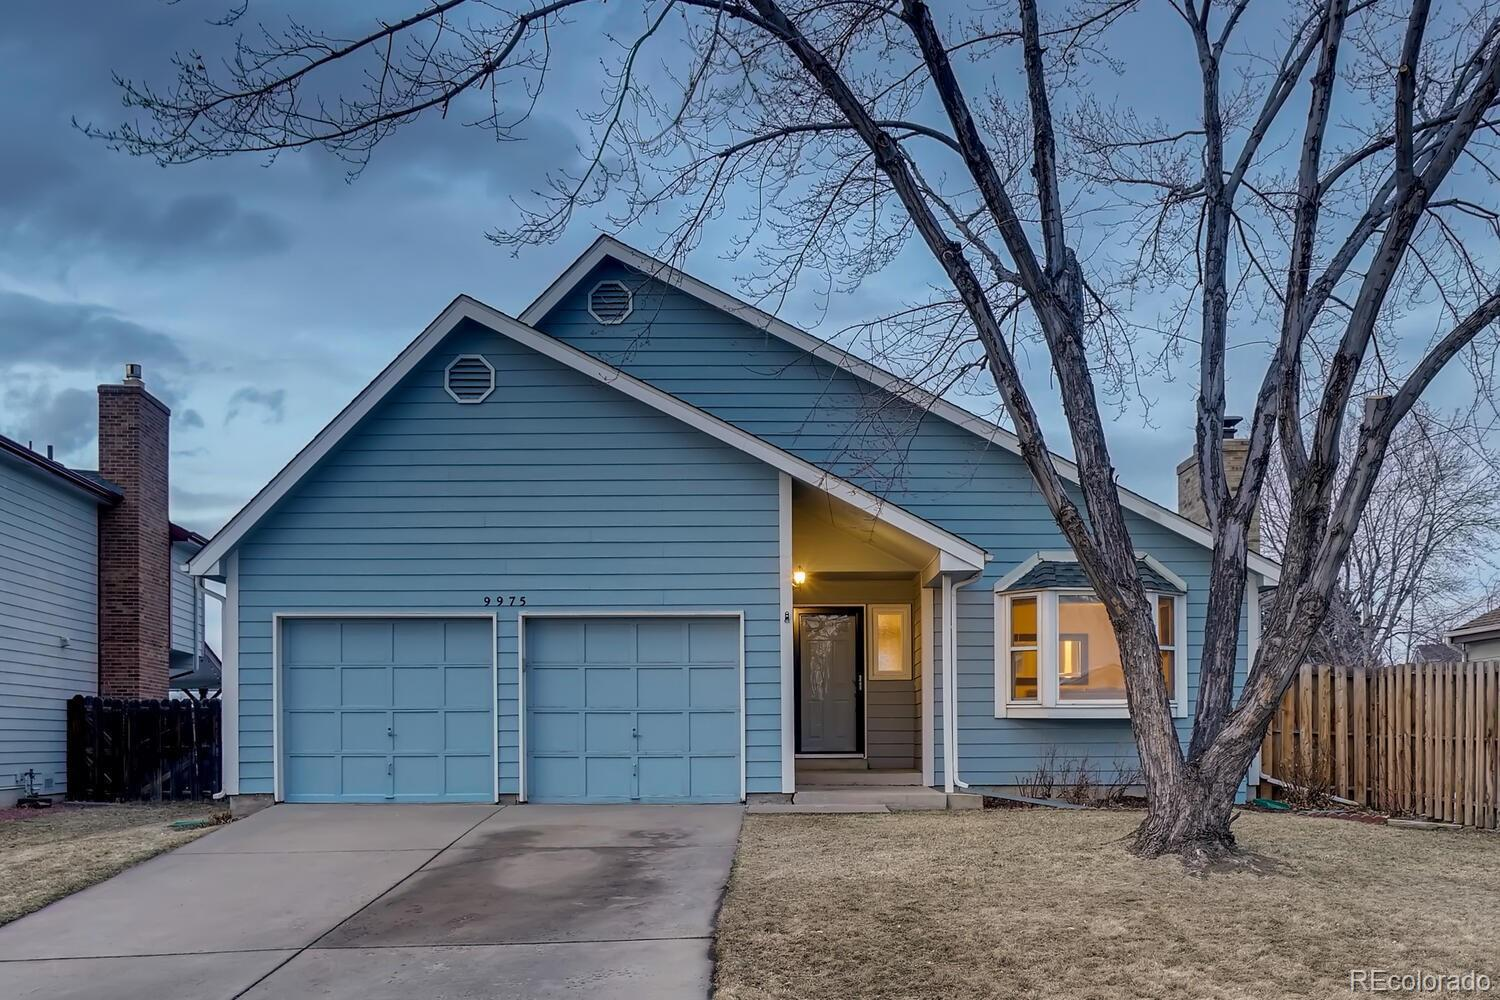 9975 W 82nd Place, Arvada, CO 80005 - #: 6850225